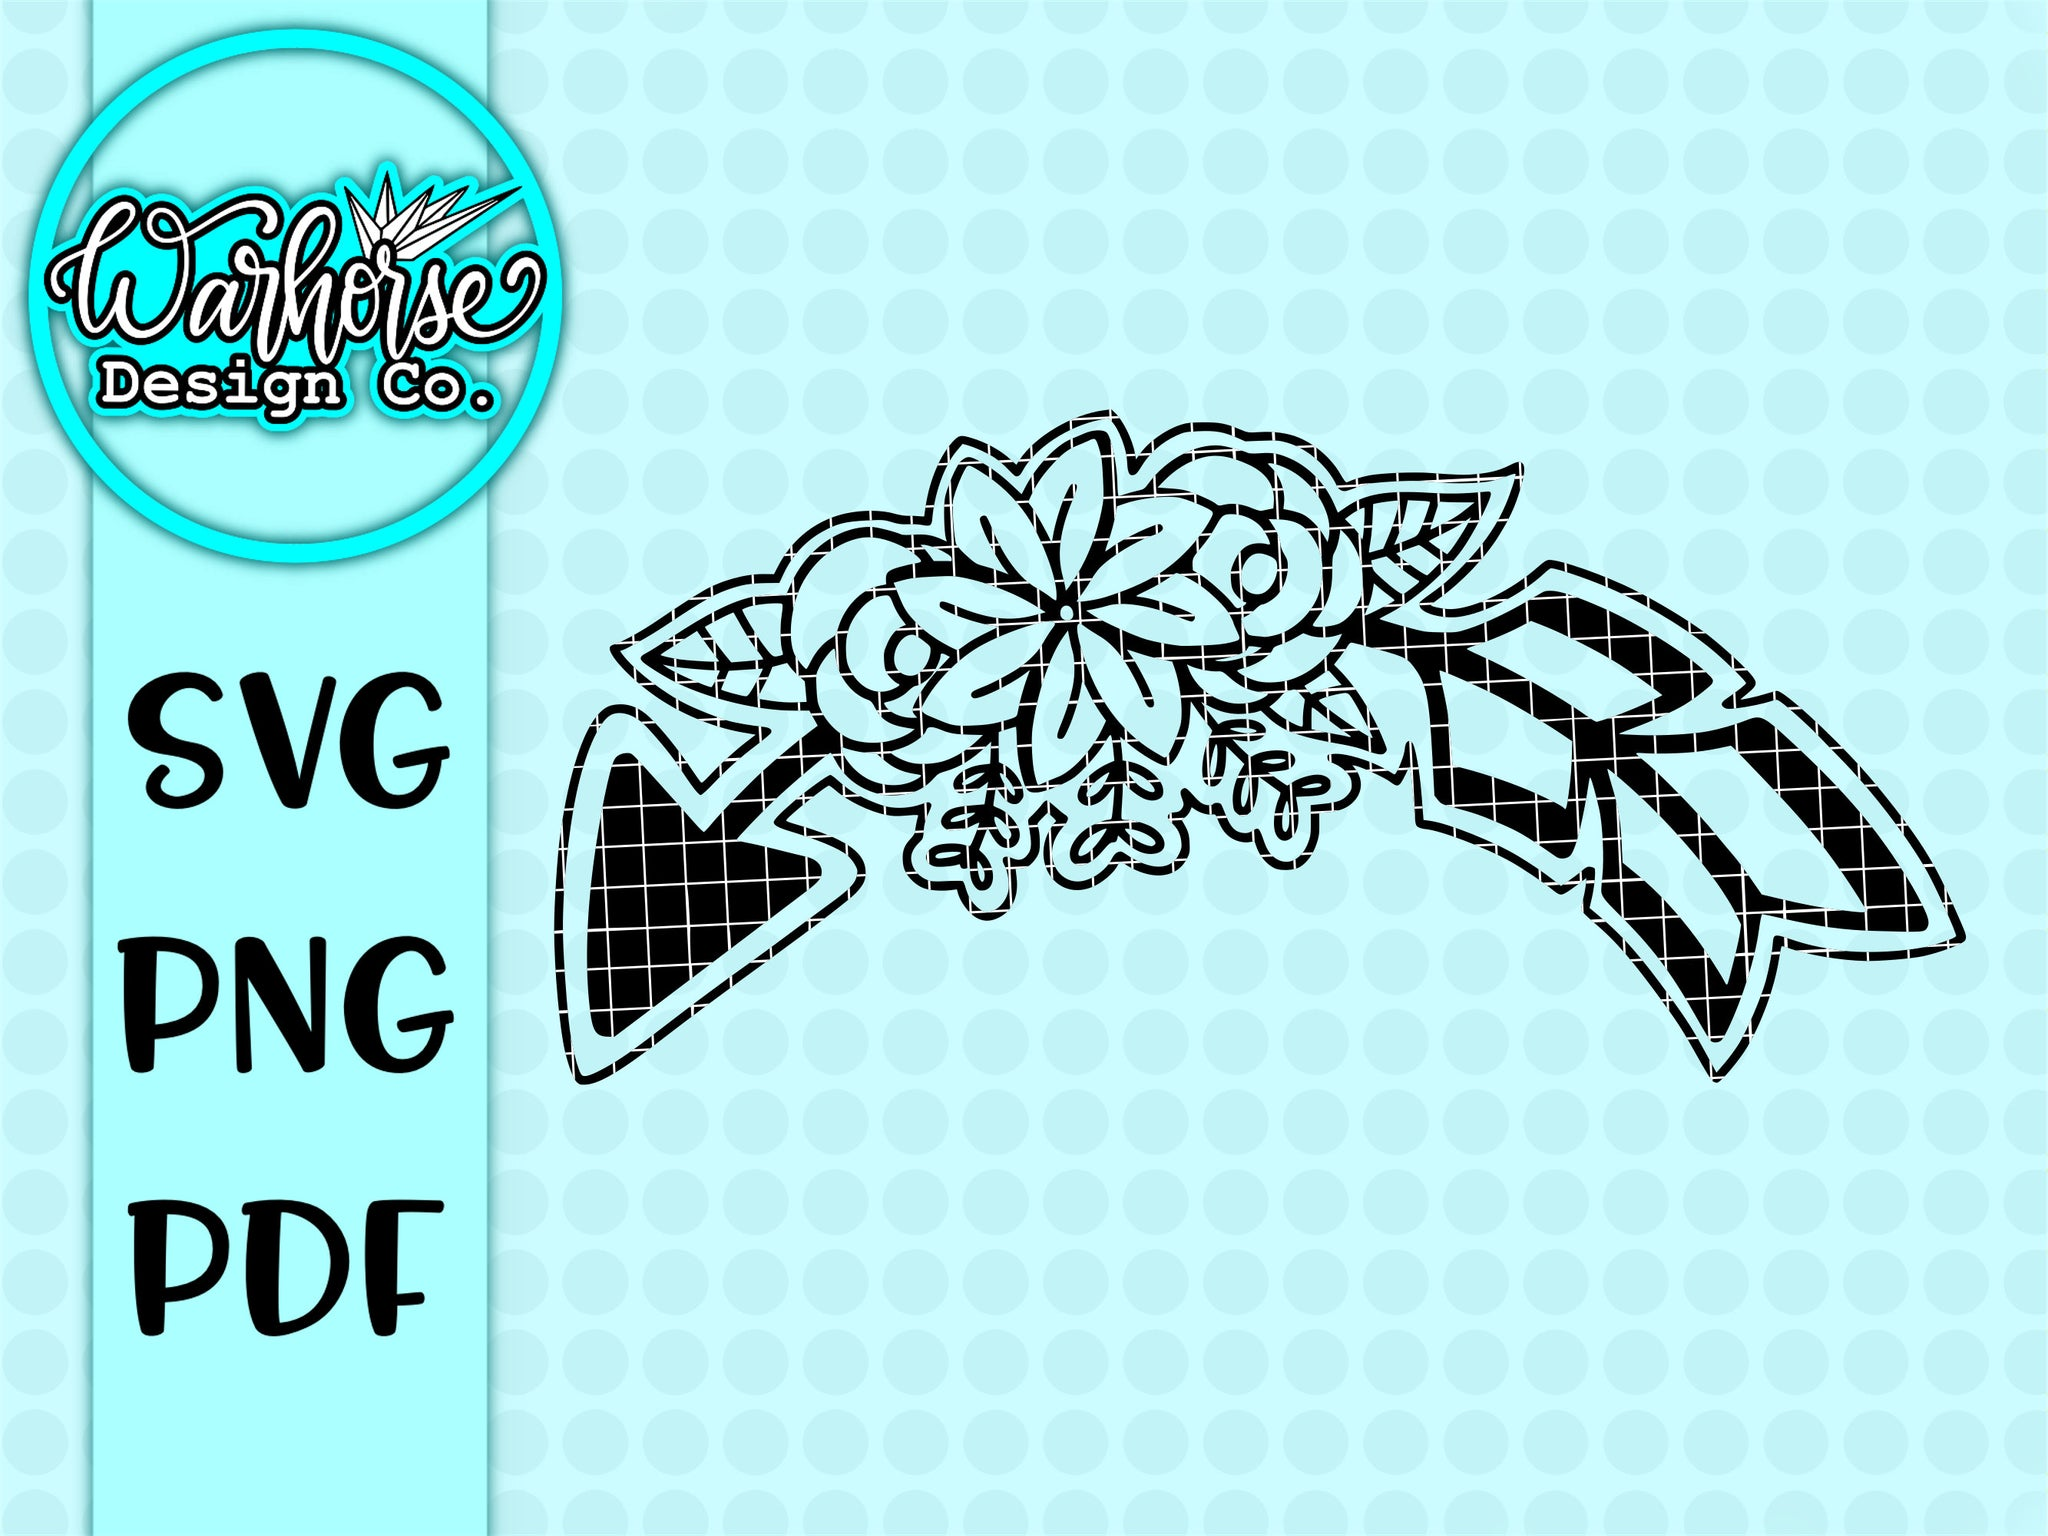 Floral Arrow SVG PNG PDF